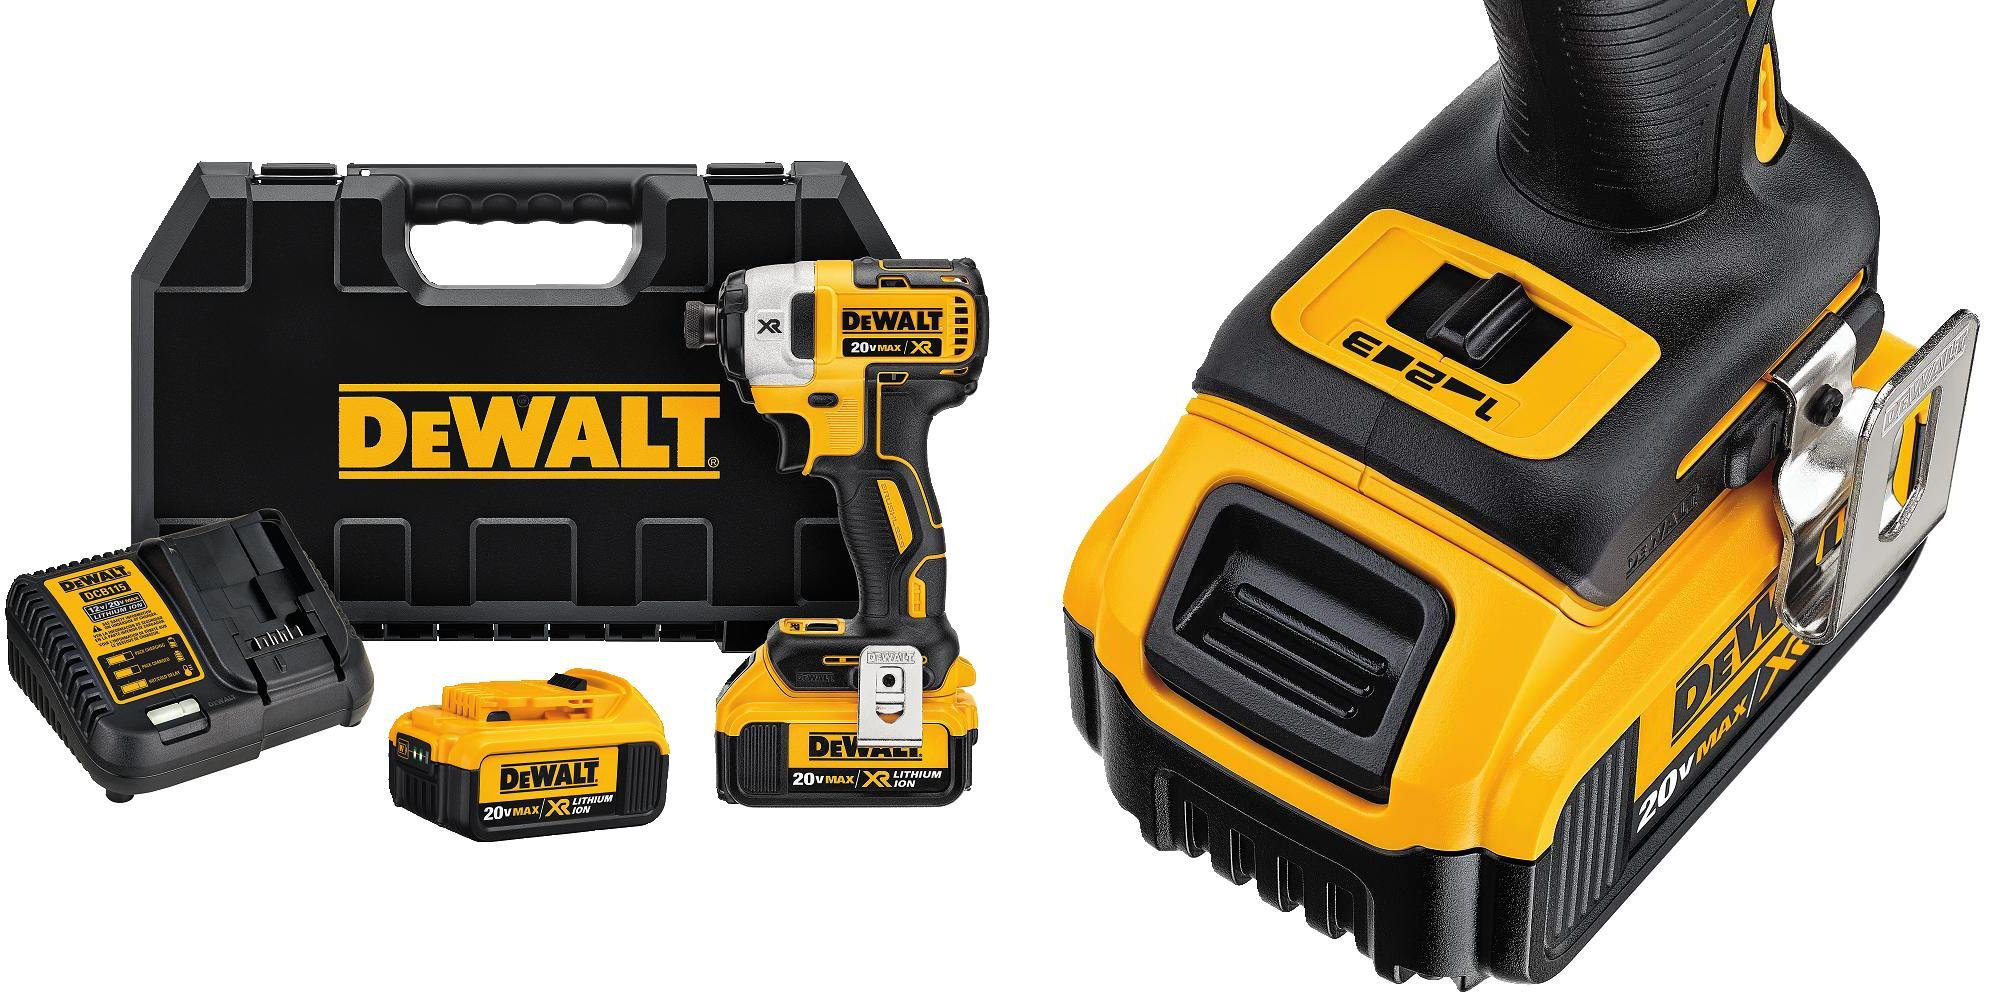 DEWALT's Impact Driver Kit hits all-time low of $145 shipped ($105 off)